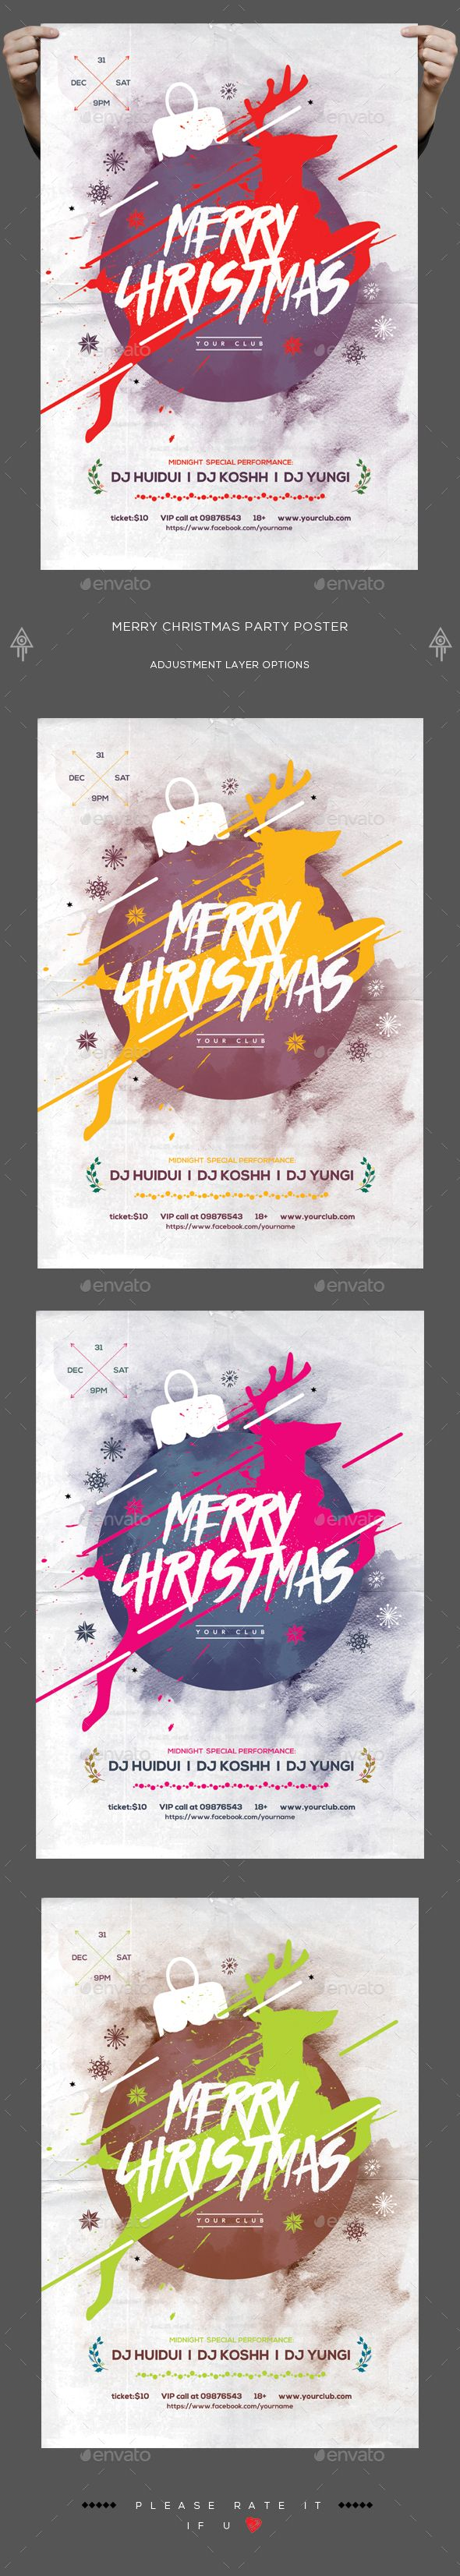 christmas party flyer on behance l a y o u t merry christmas party poster